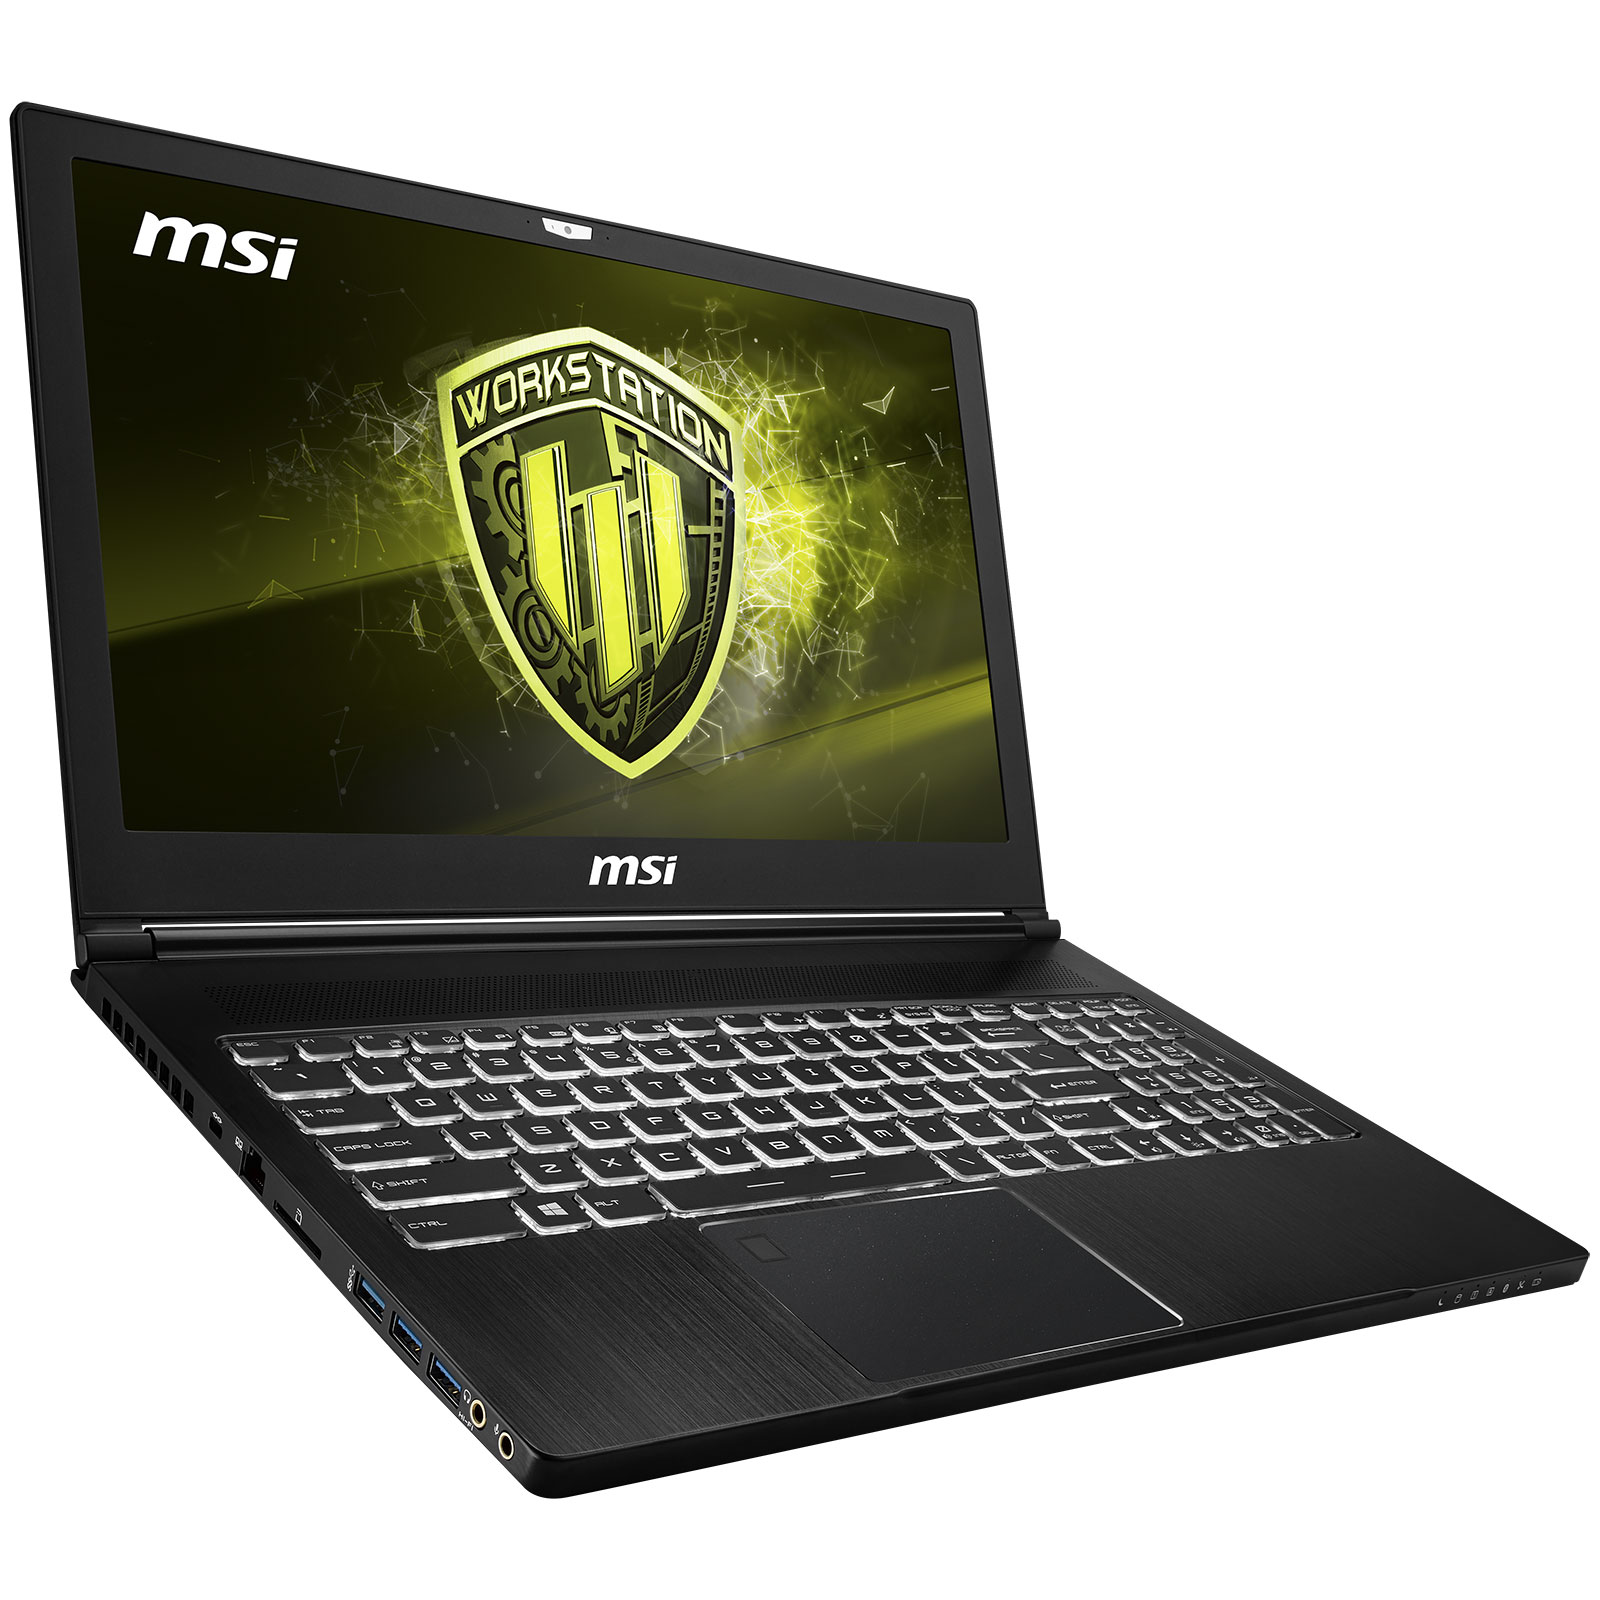 "PC portable MSI WS63 8SJ-042FR Intel Core i7-8850H 32 Go SSD 512 Go + HDD 2 To 15.6"" LED Ultra HD NVIDIA Quadro P2000 4 Go Wi-Fi AC/Bluetooth Webcam Windows 10 Professionnel 64 bits (garantie constructeur 3 ans)"